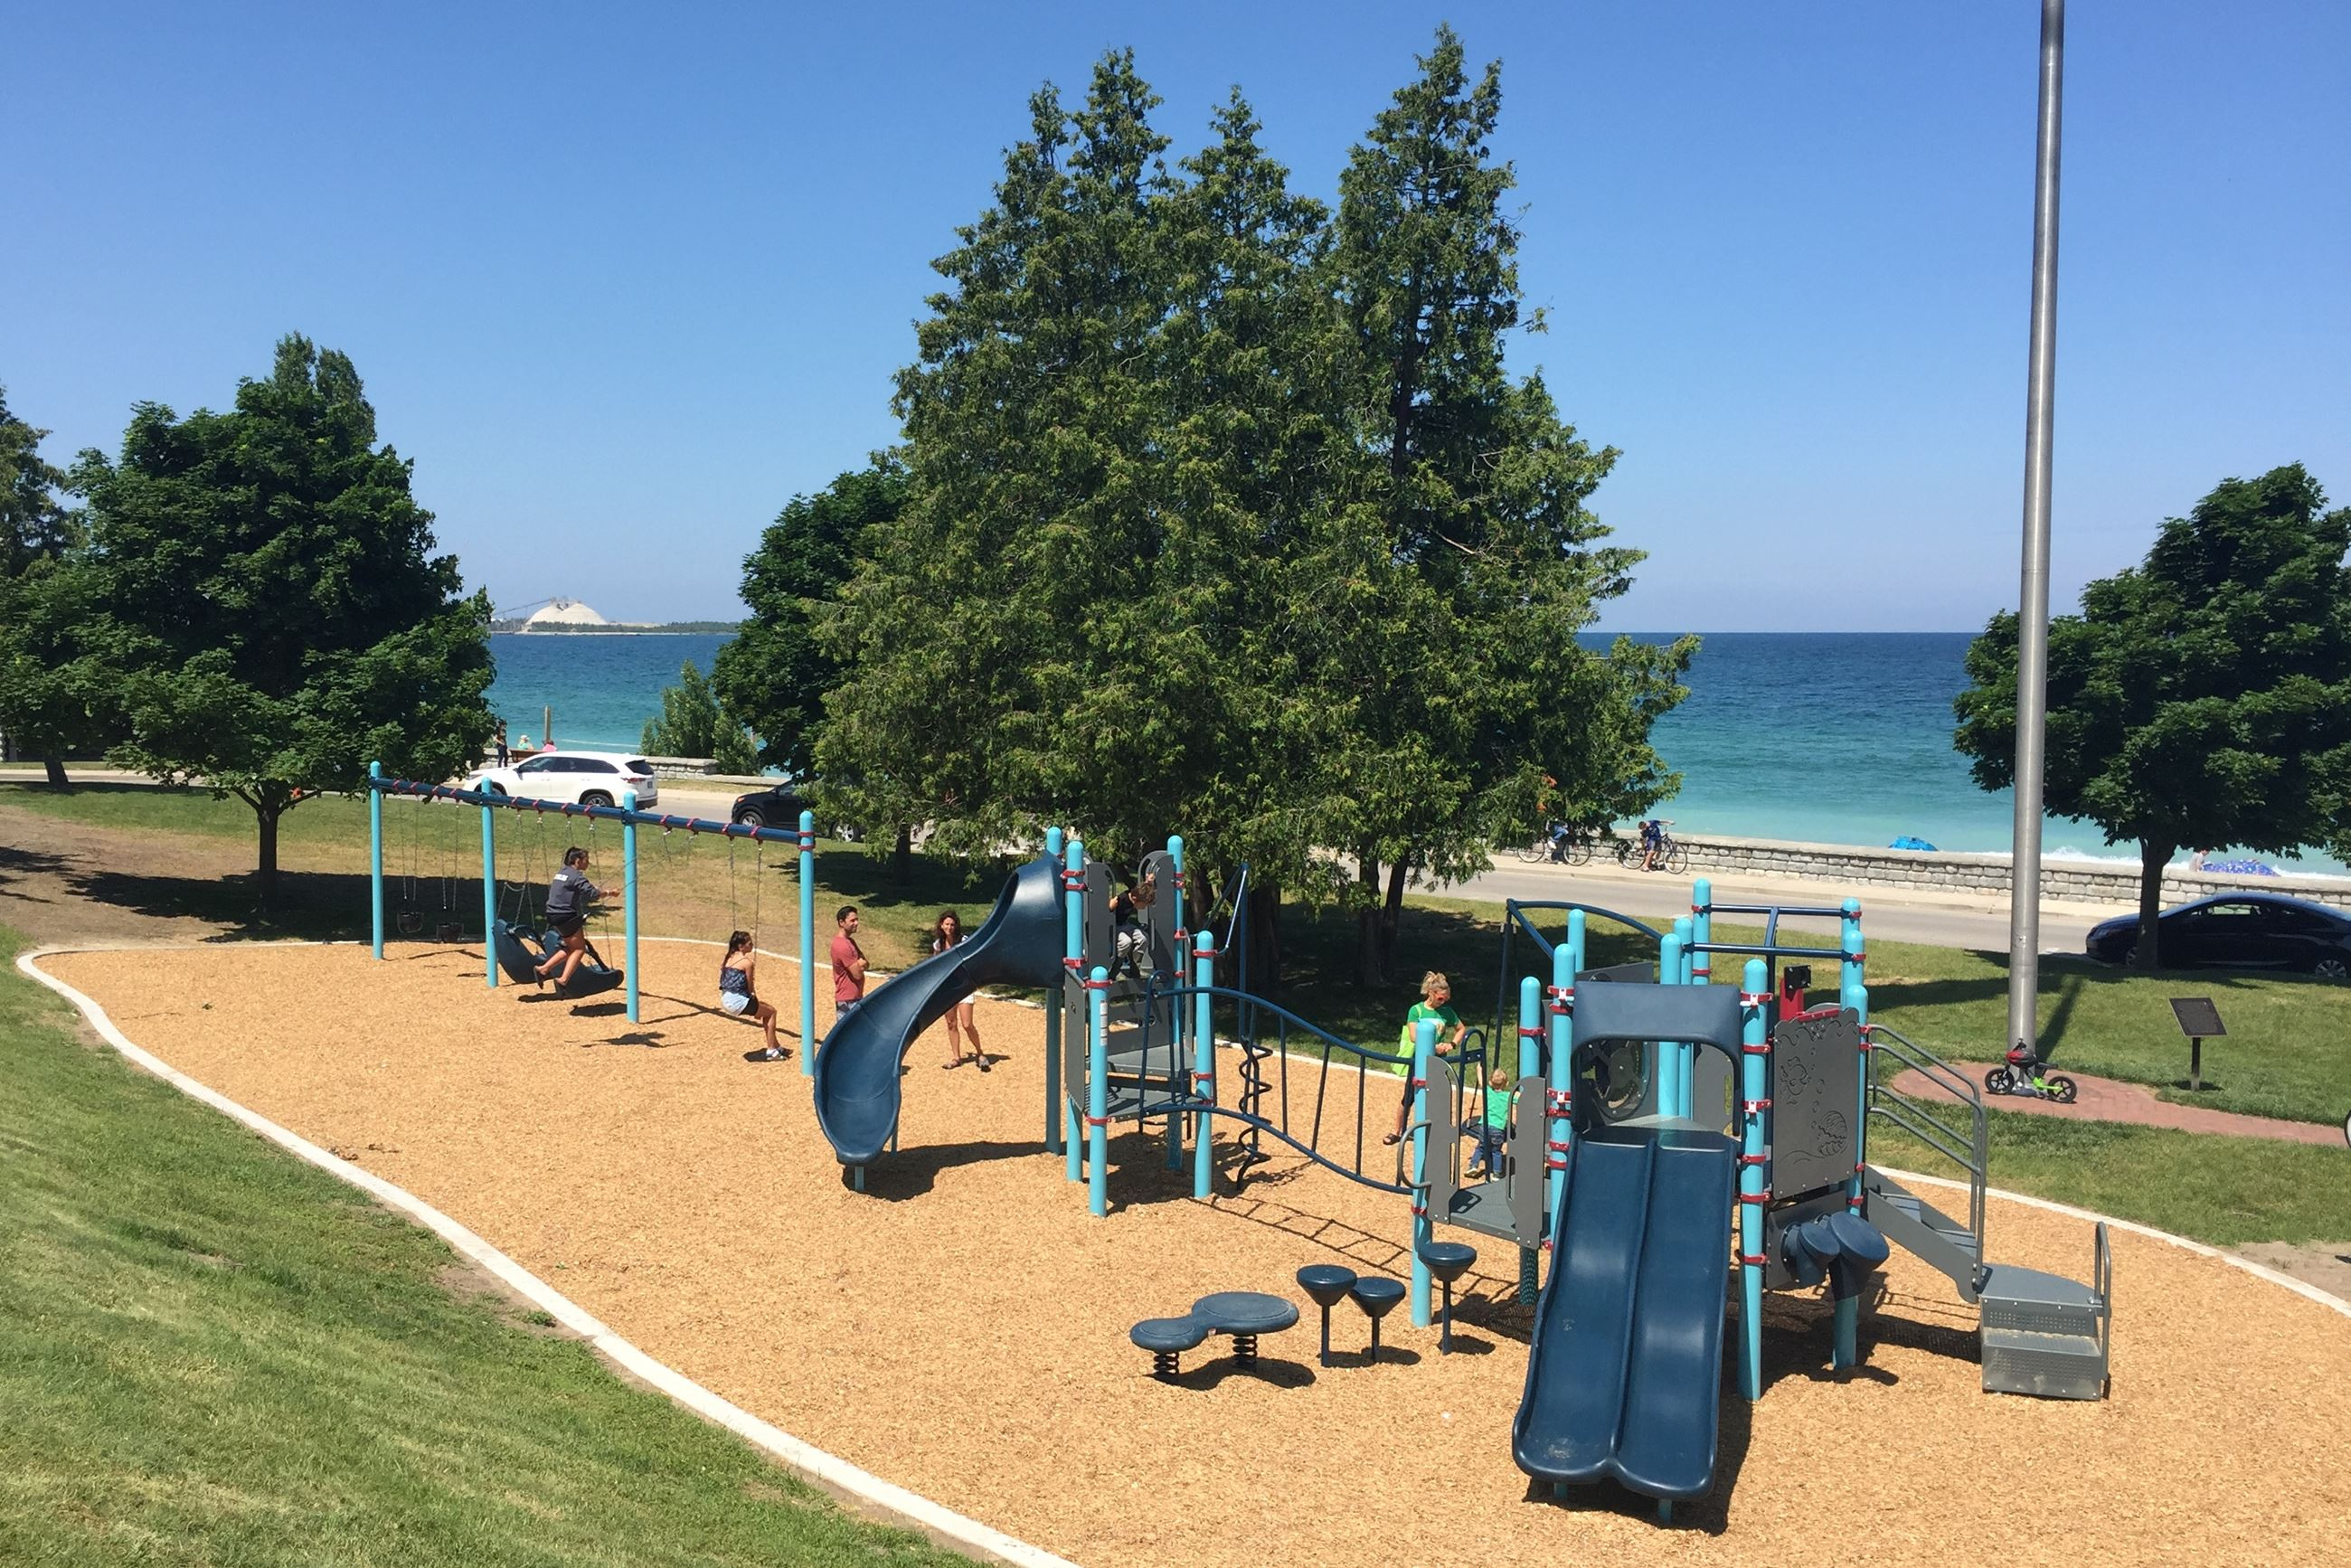 Playground at Lake Michigan Beach